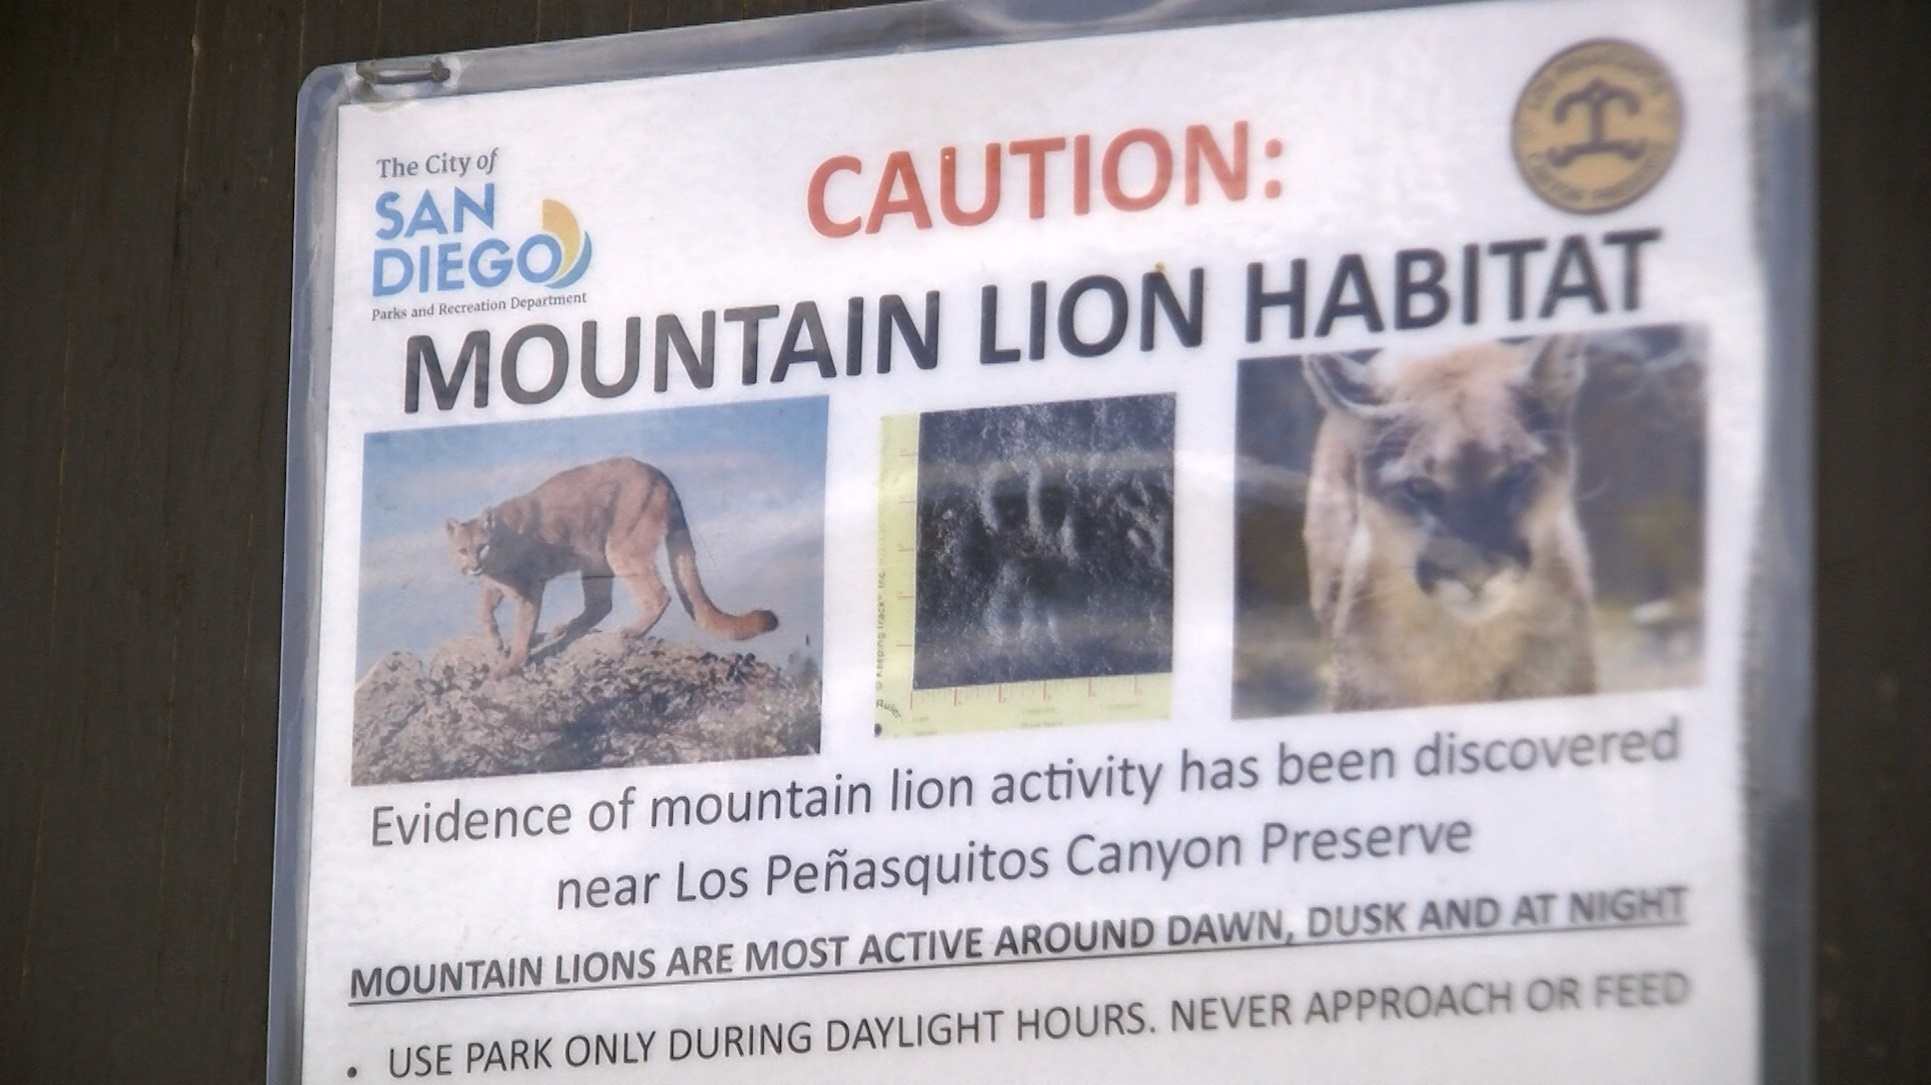 Wildlife Officers: DNA Analysis Shows Slain Mountain Lion Attacked Boy